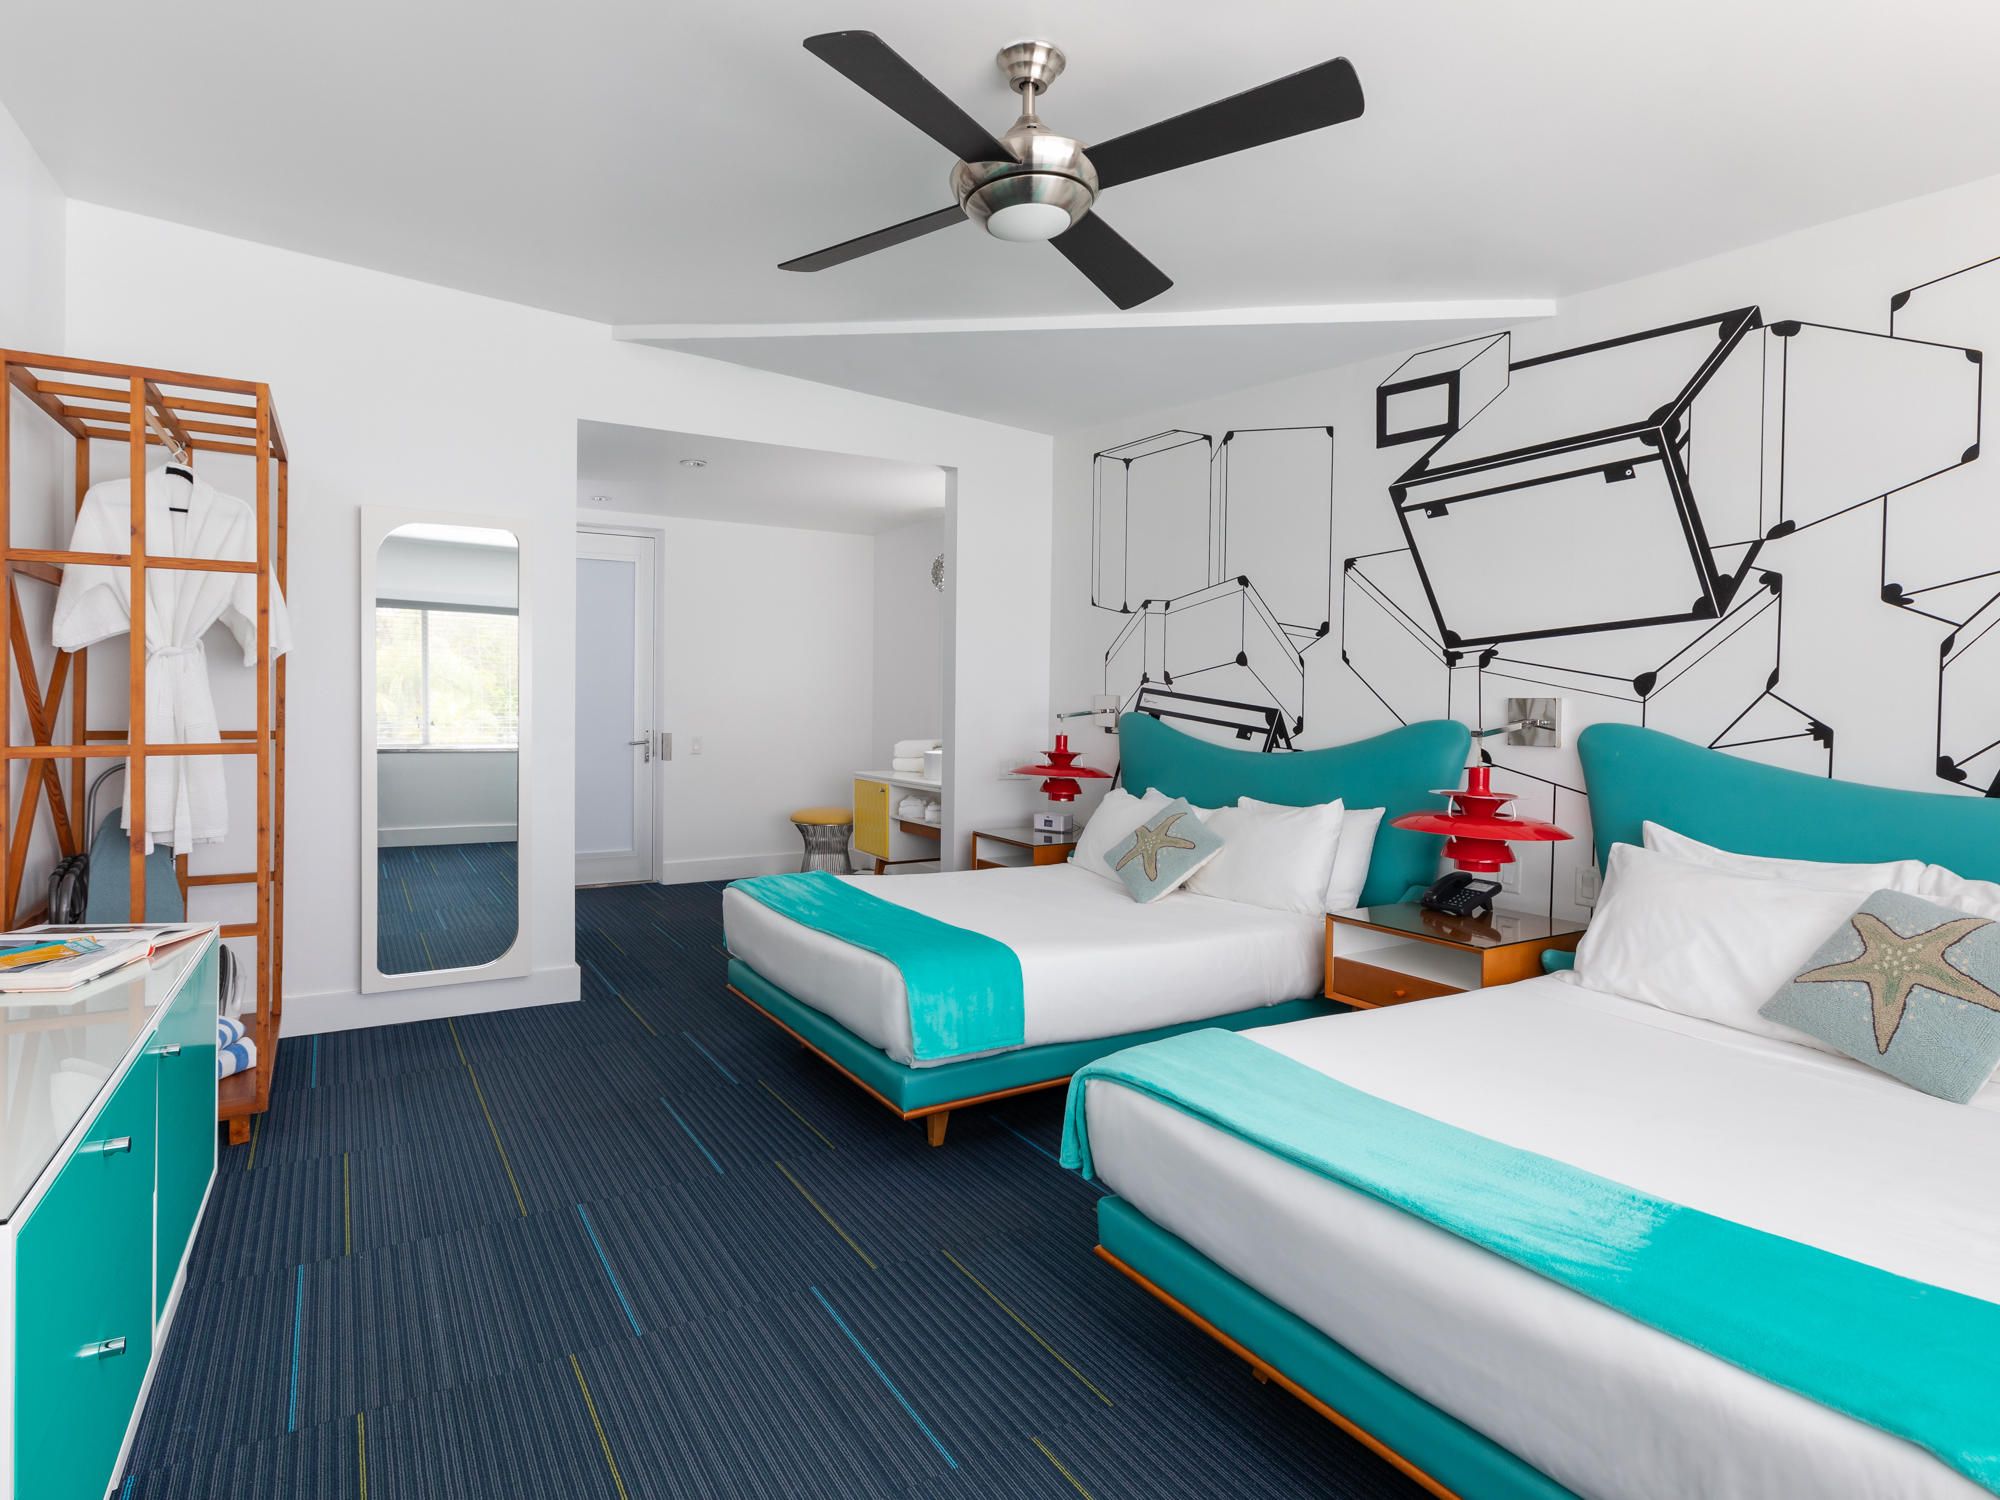 Image of the entire Skylark Doubles room that includes two full size beds, the hand stenciled wall, the bathroom vanity and the wardrobe with robes and an ironing board